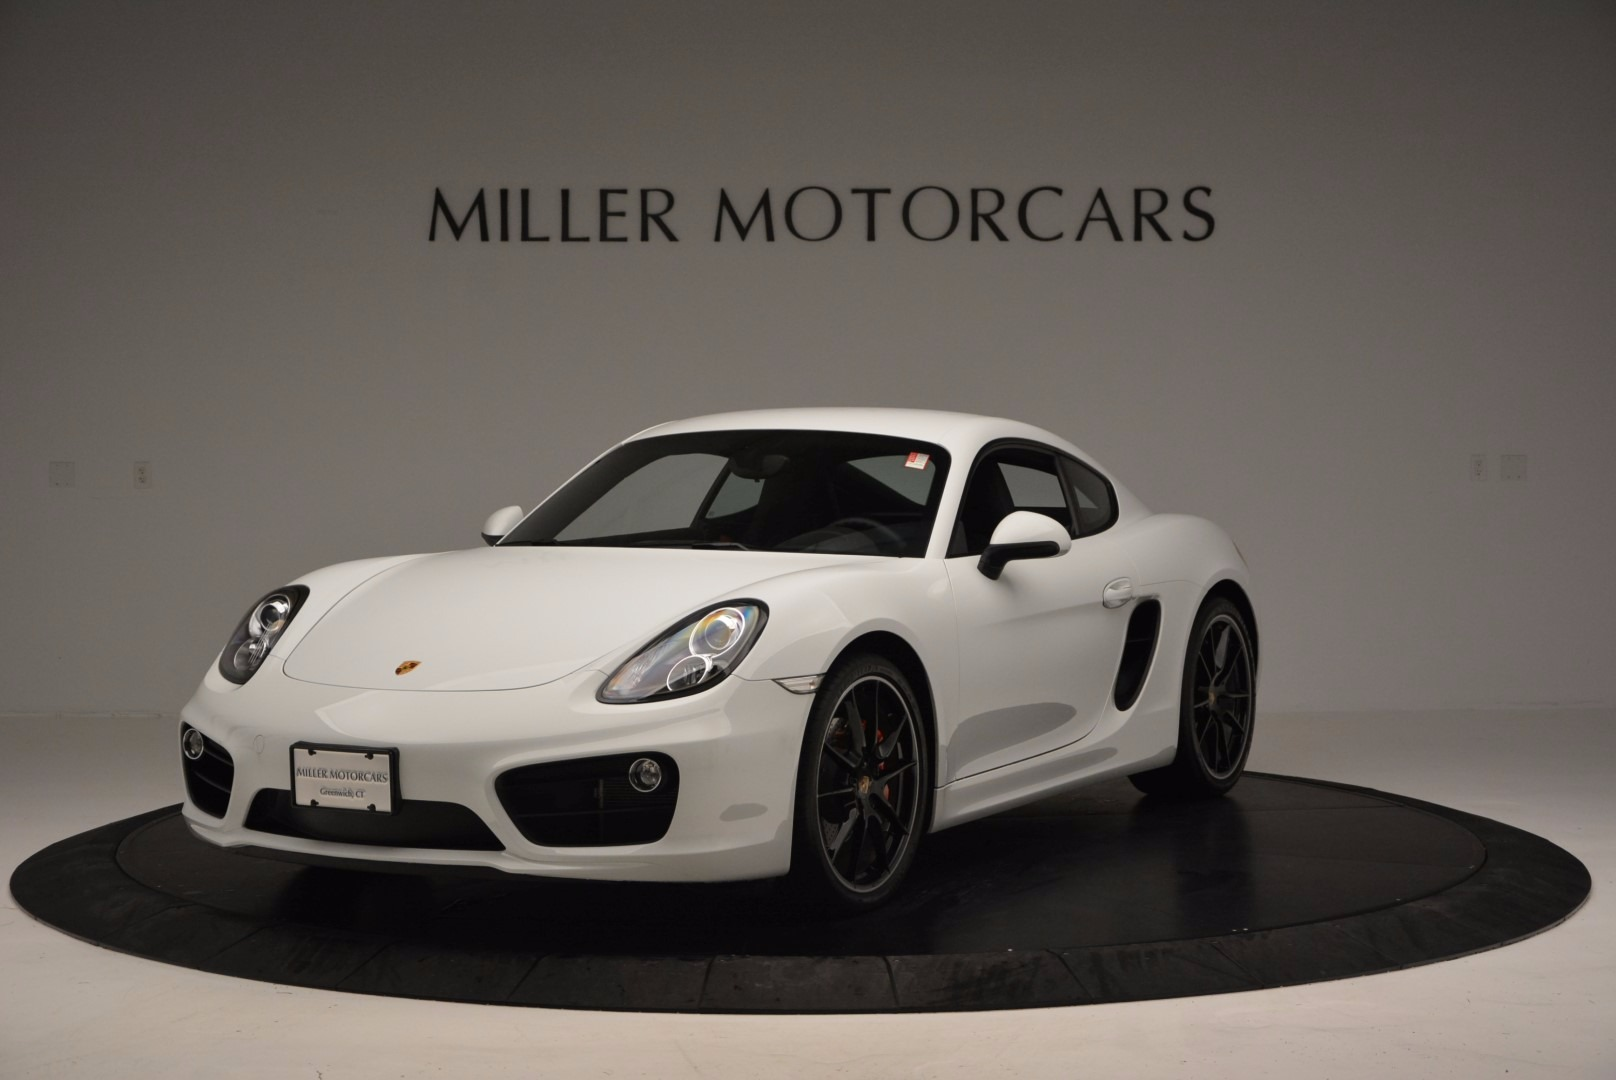 Used 2014 Porsche Cayman S for sale Sold at Bentley Greenwich in Greenwich CT 06830 1